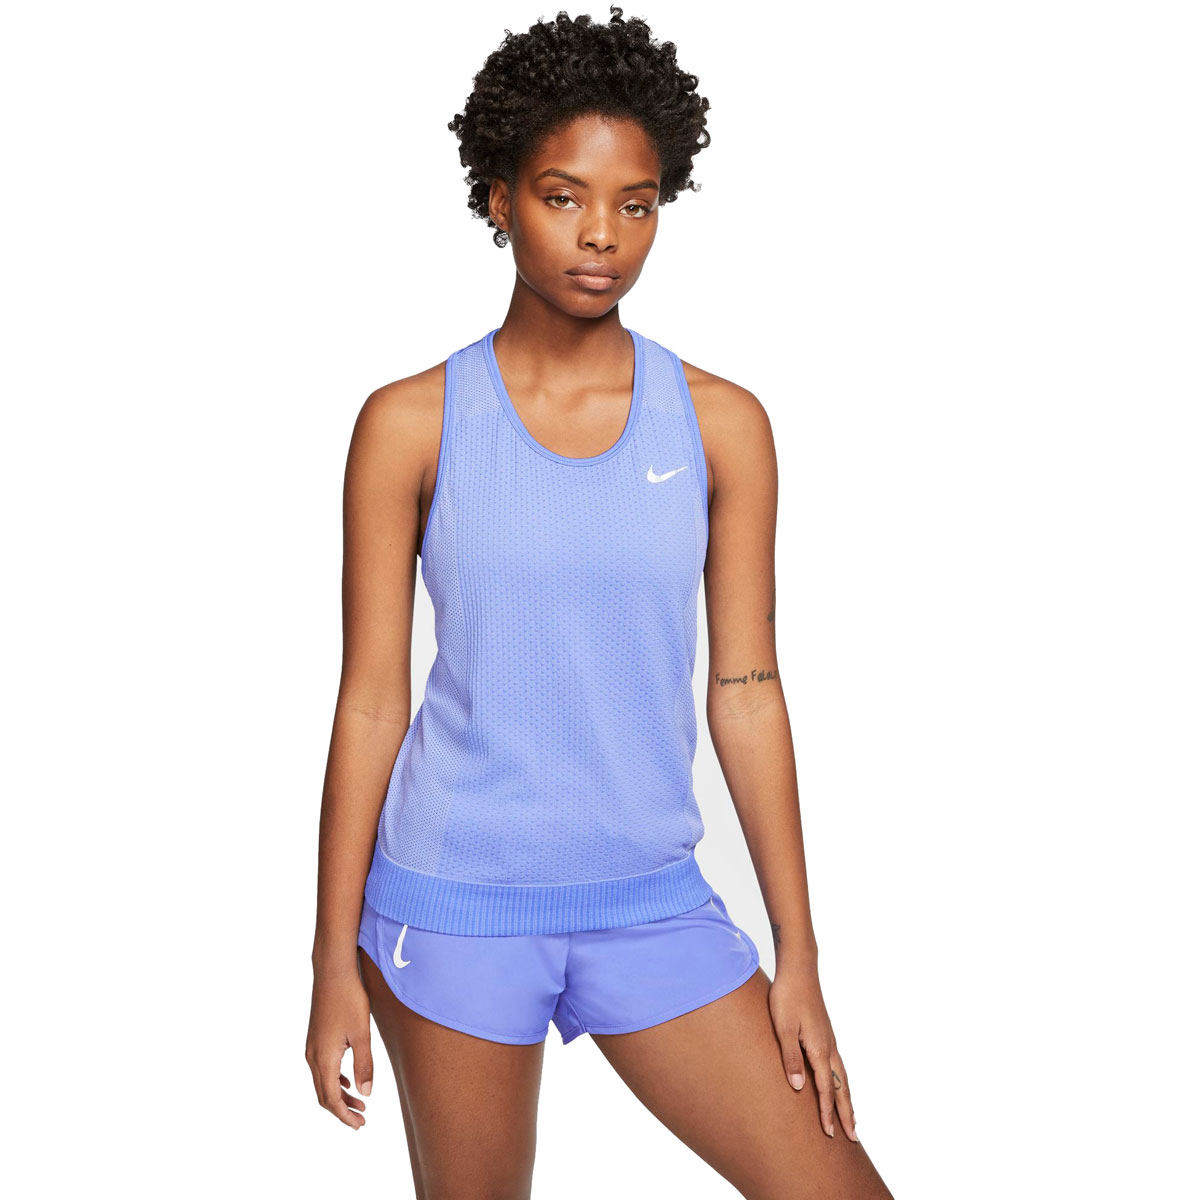 Women's Nike Infinite Running Tank - Color: Sapphire/Light Thistle/Reflective Silver - Size: XS, Sapphire/Light Thistle/Reflective Silver, large, image 1